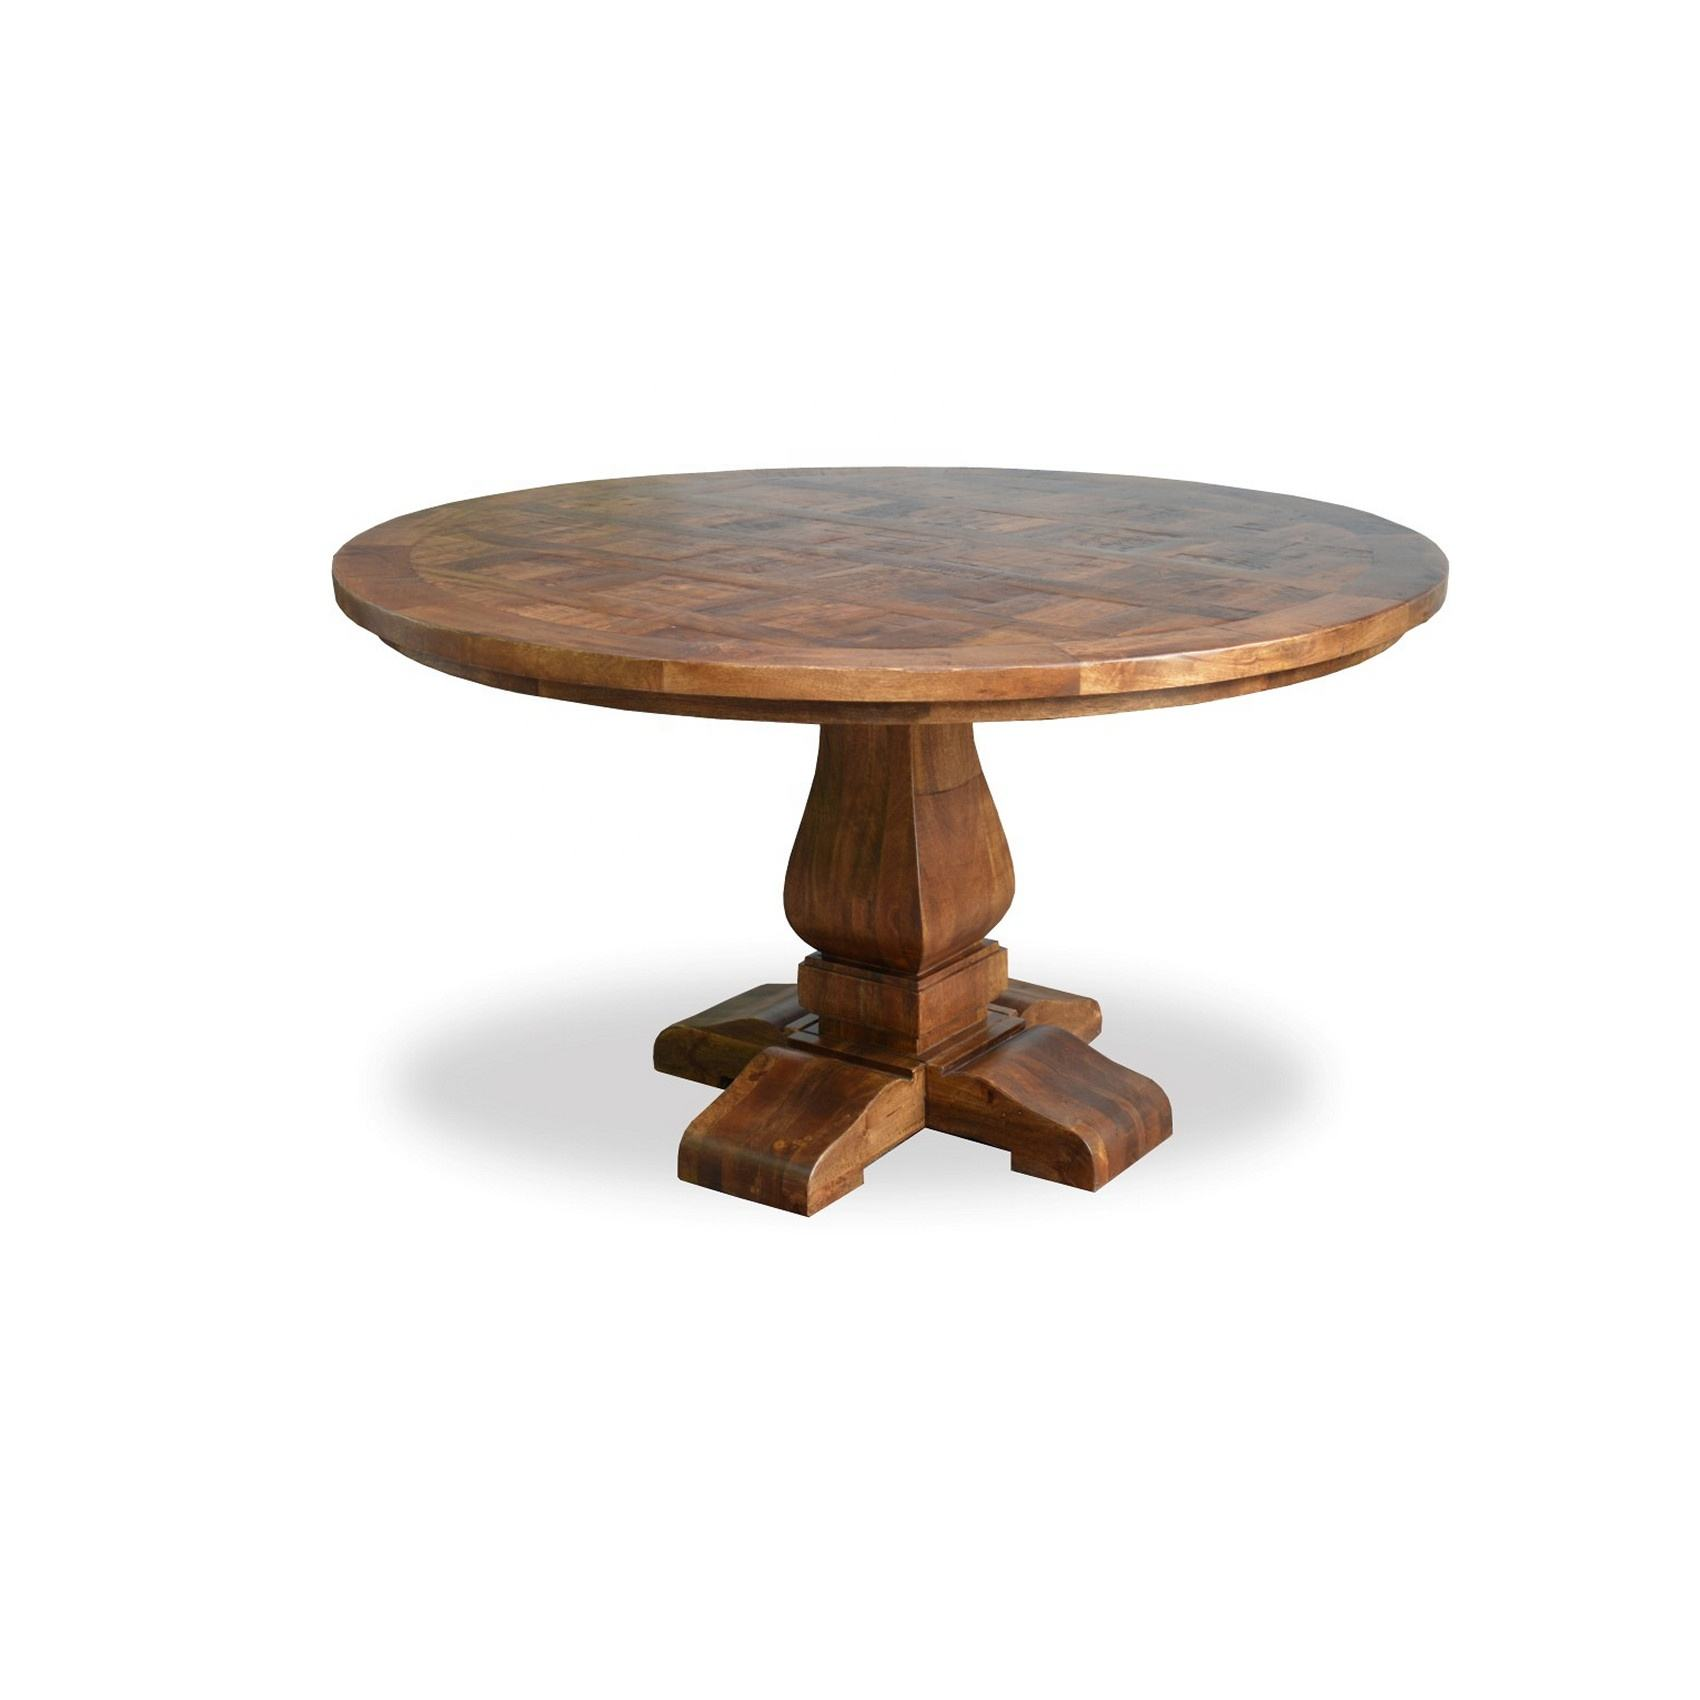 ROUND DINING TABLE W/ PEDESTAL BASE Mango Acacia Solid Wood Rustic Furniture Modern